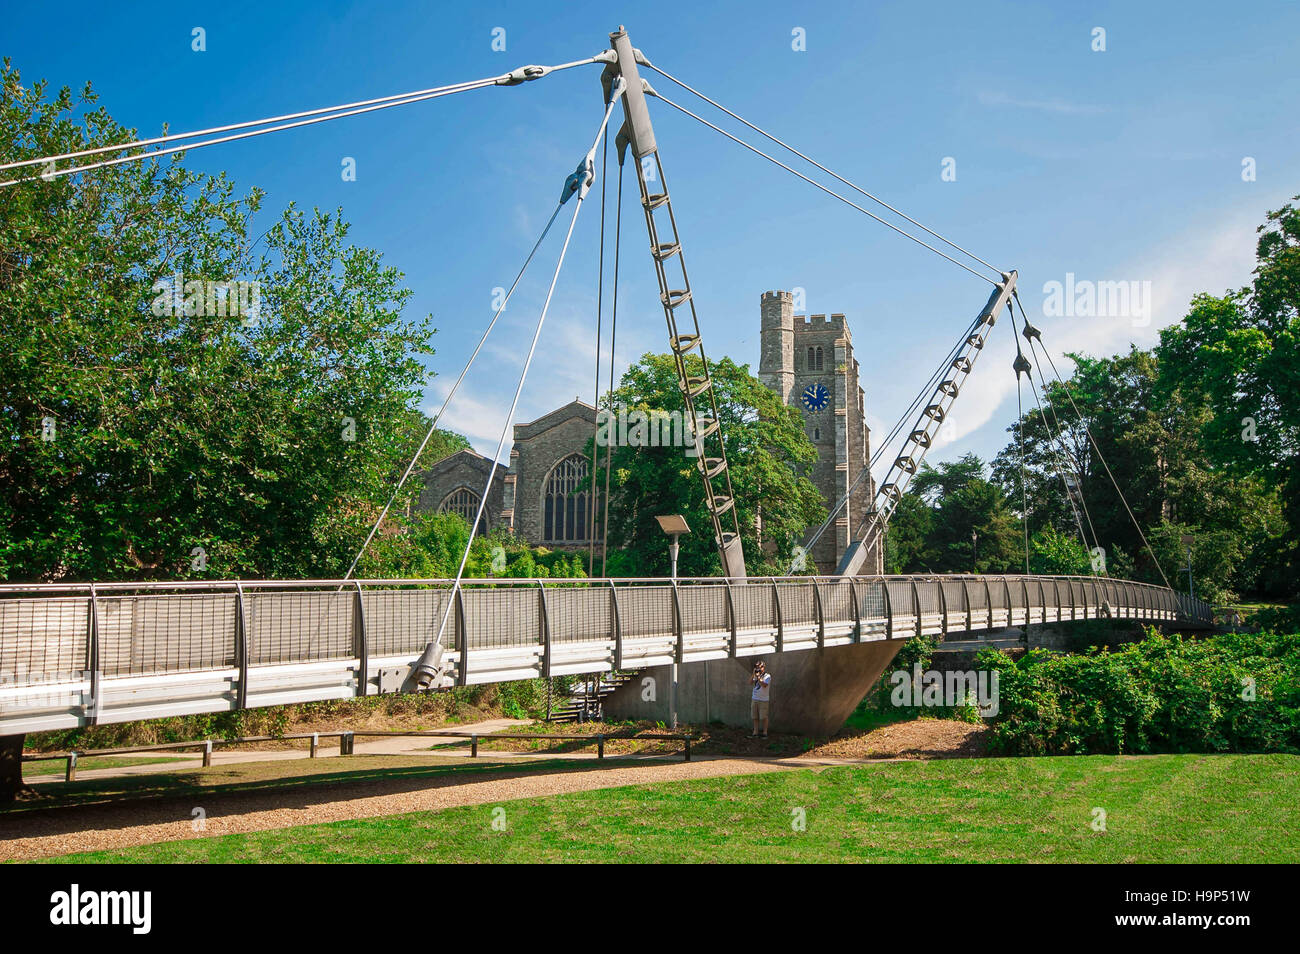 A picture of the Millennium Bridge in Maidstone - Stock Image